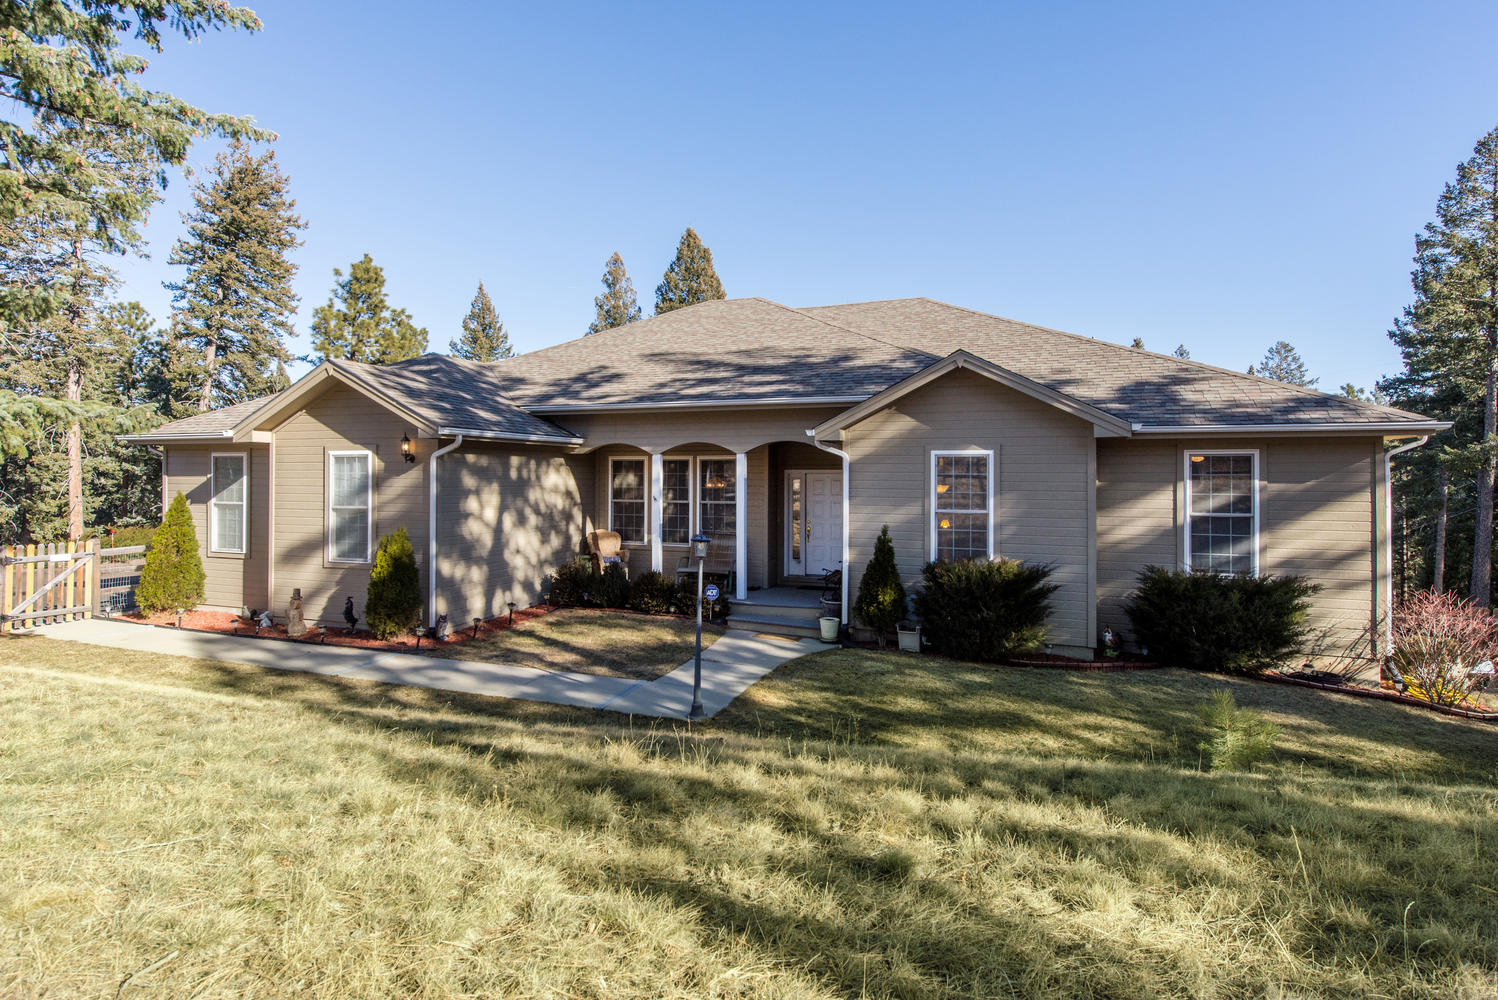 Single Family Home for Sale at Great Location in the Foothills 20957 Horse Bit Way Morrison, Colorado, 80465 United States